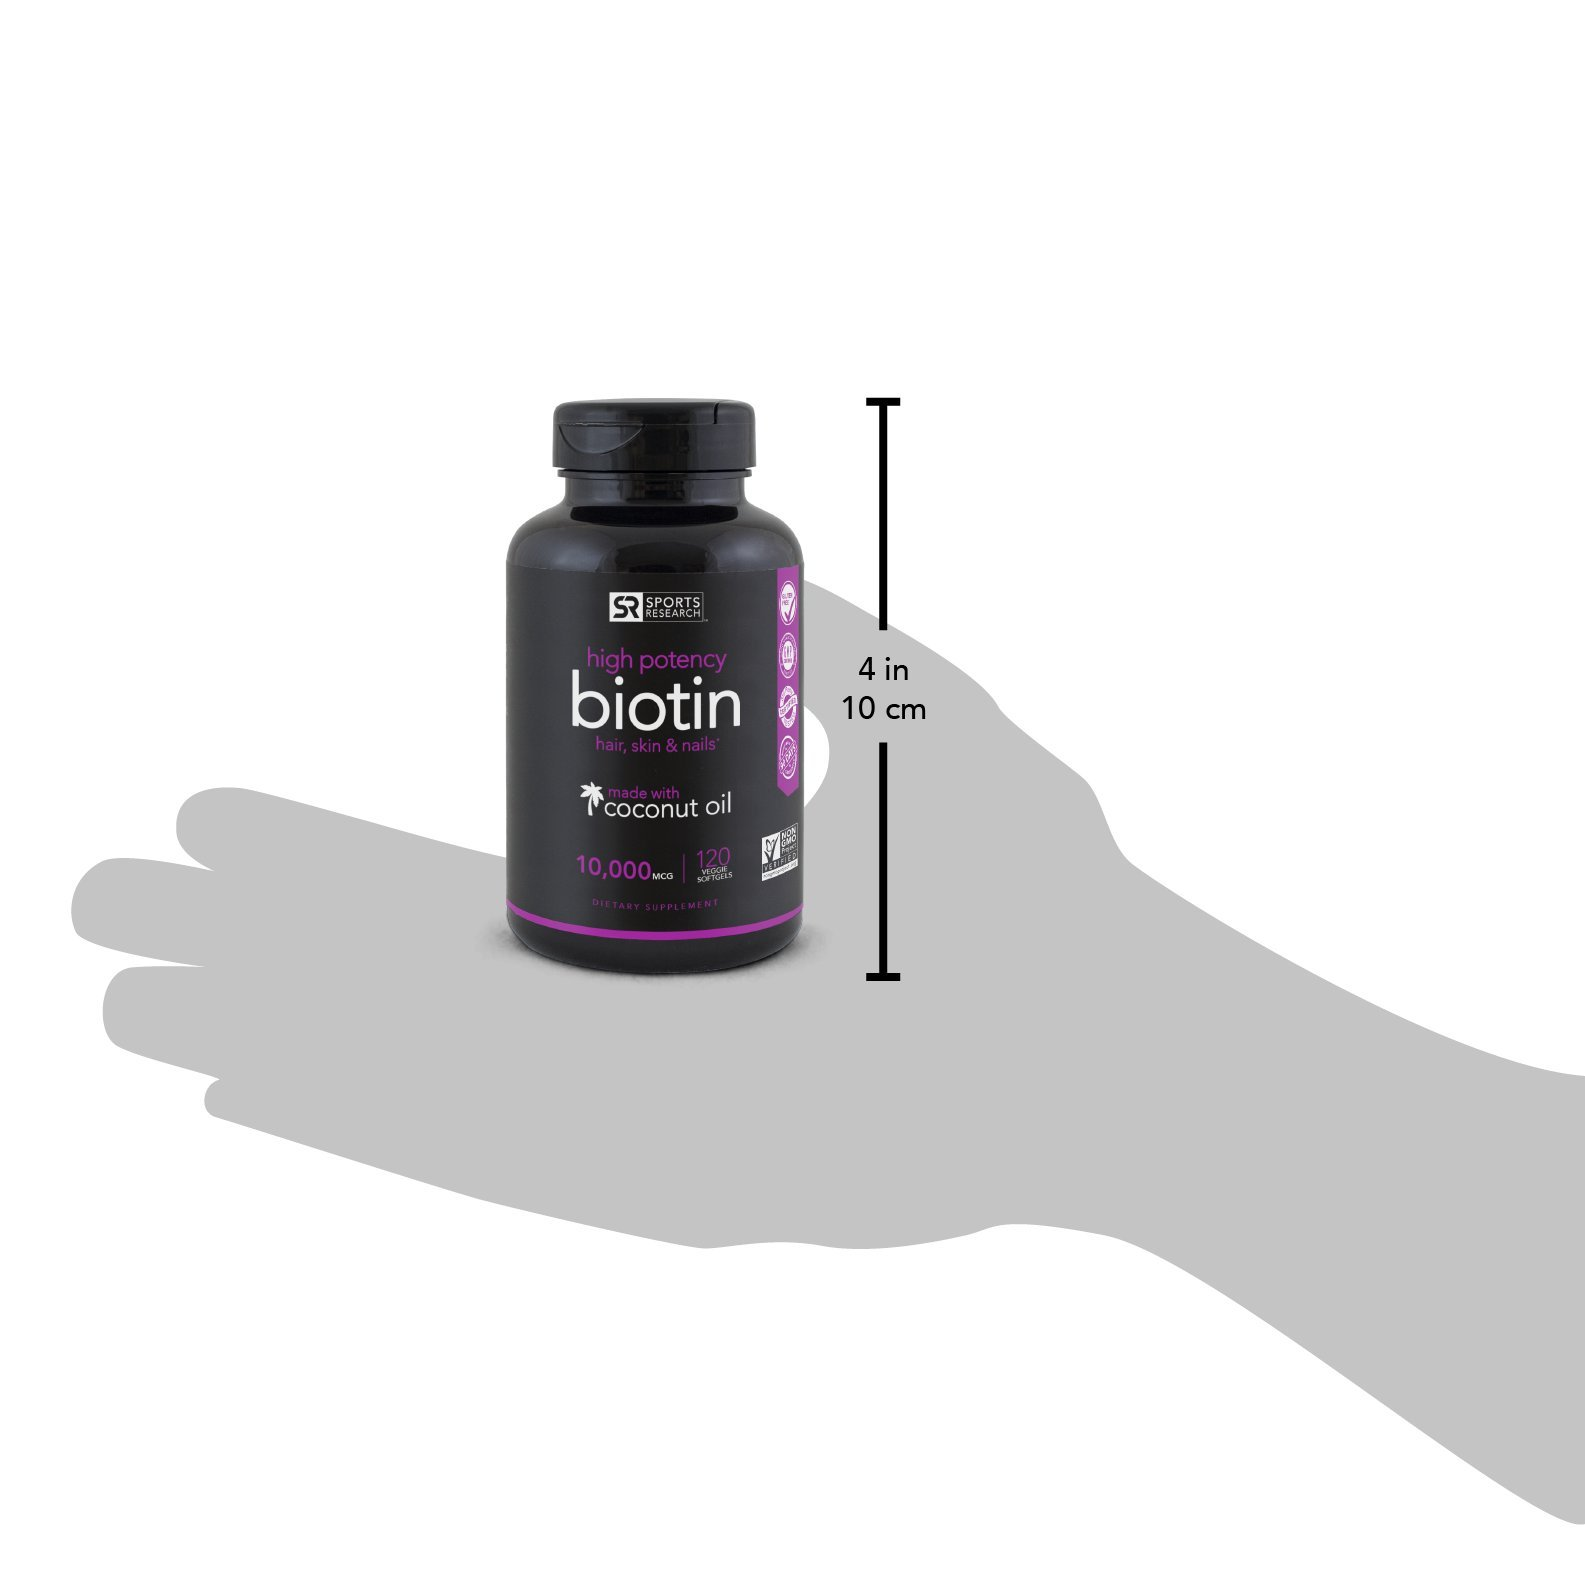 High Potency Biotin (10,000mcg) with Organic Coconut Oil; Supports Hair Growth, Glowing Skin and Strong Nails; 120 Mini-Veggie Softgels by Sports Research (Image #7)